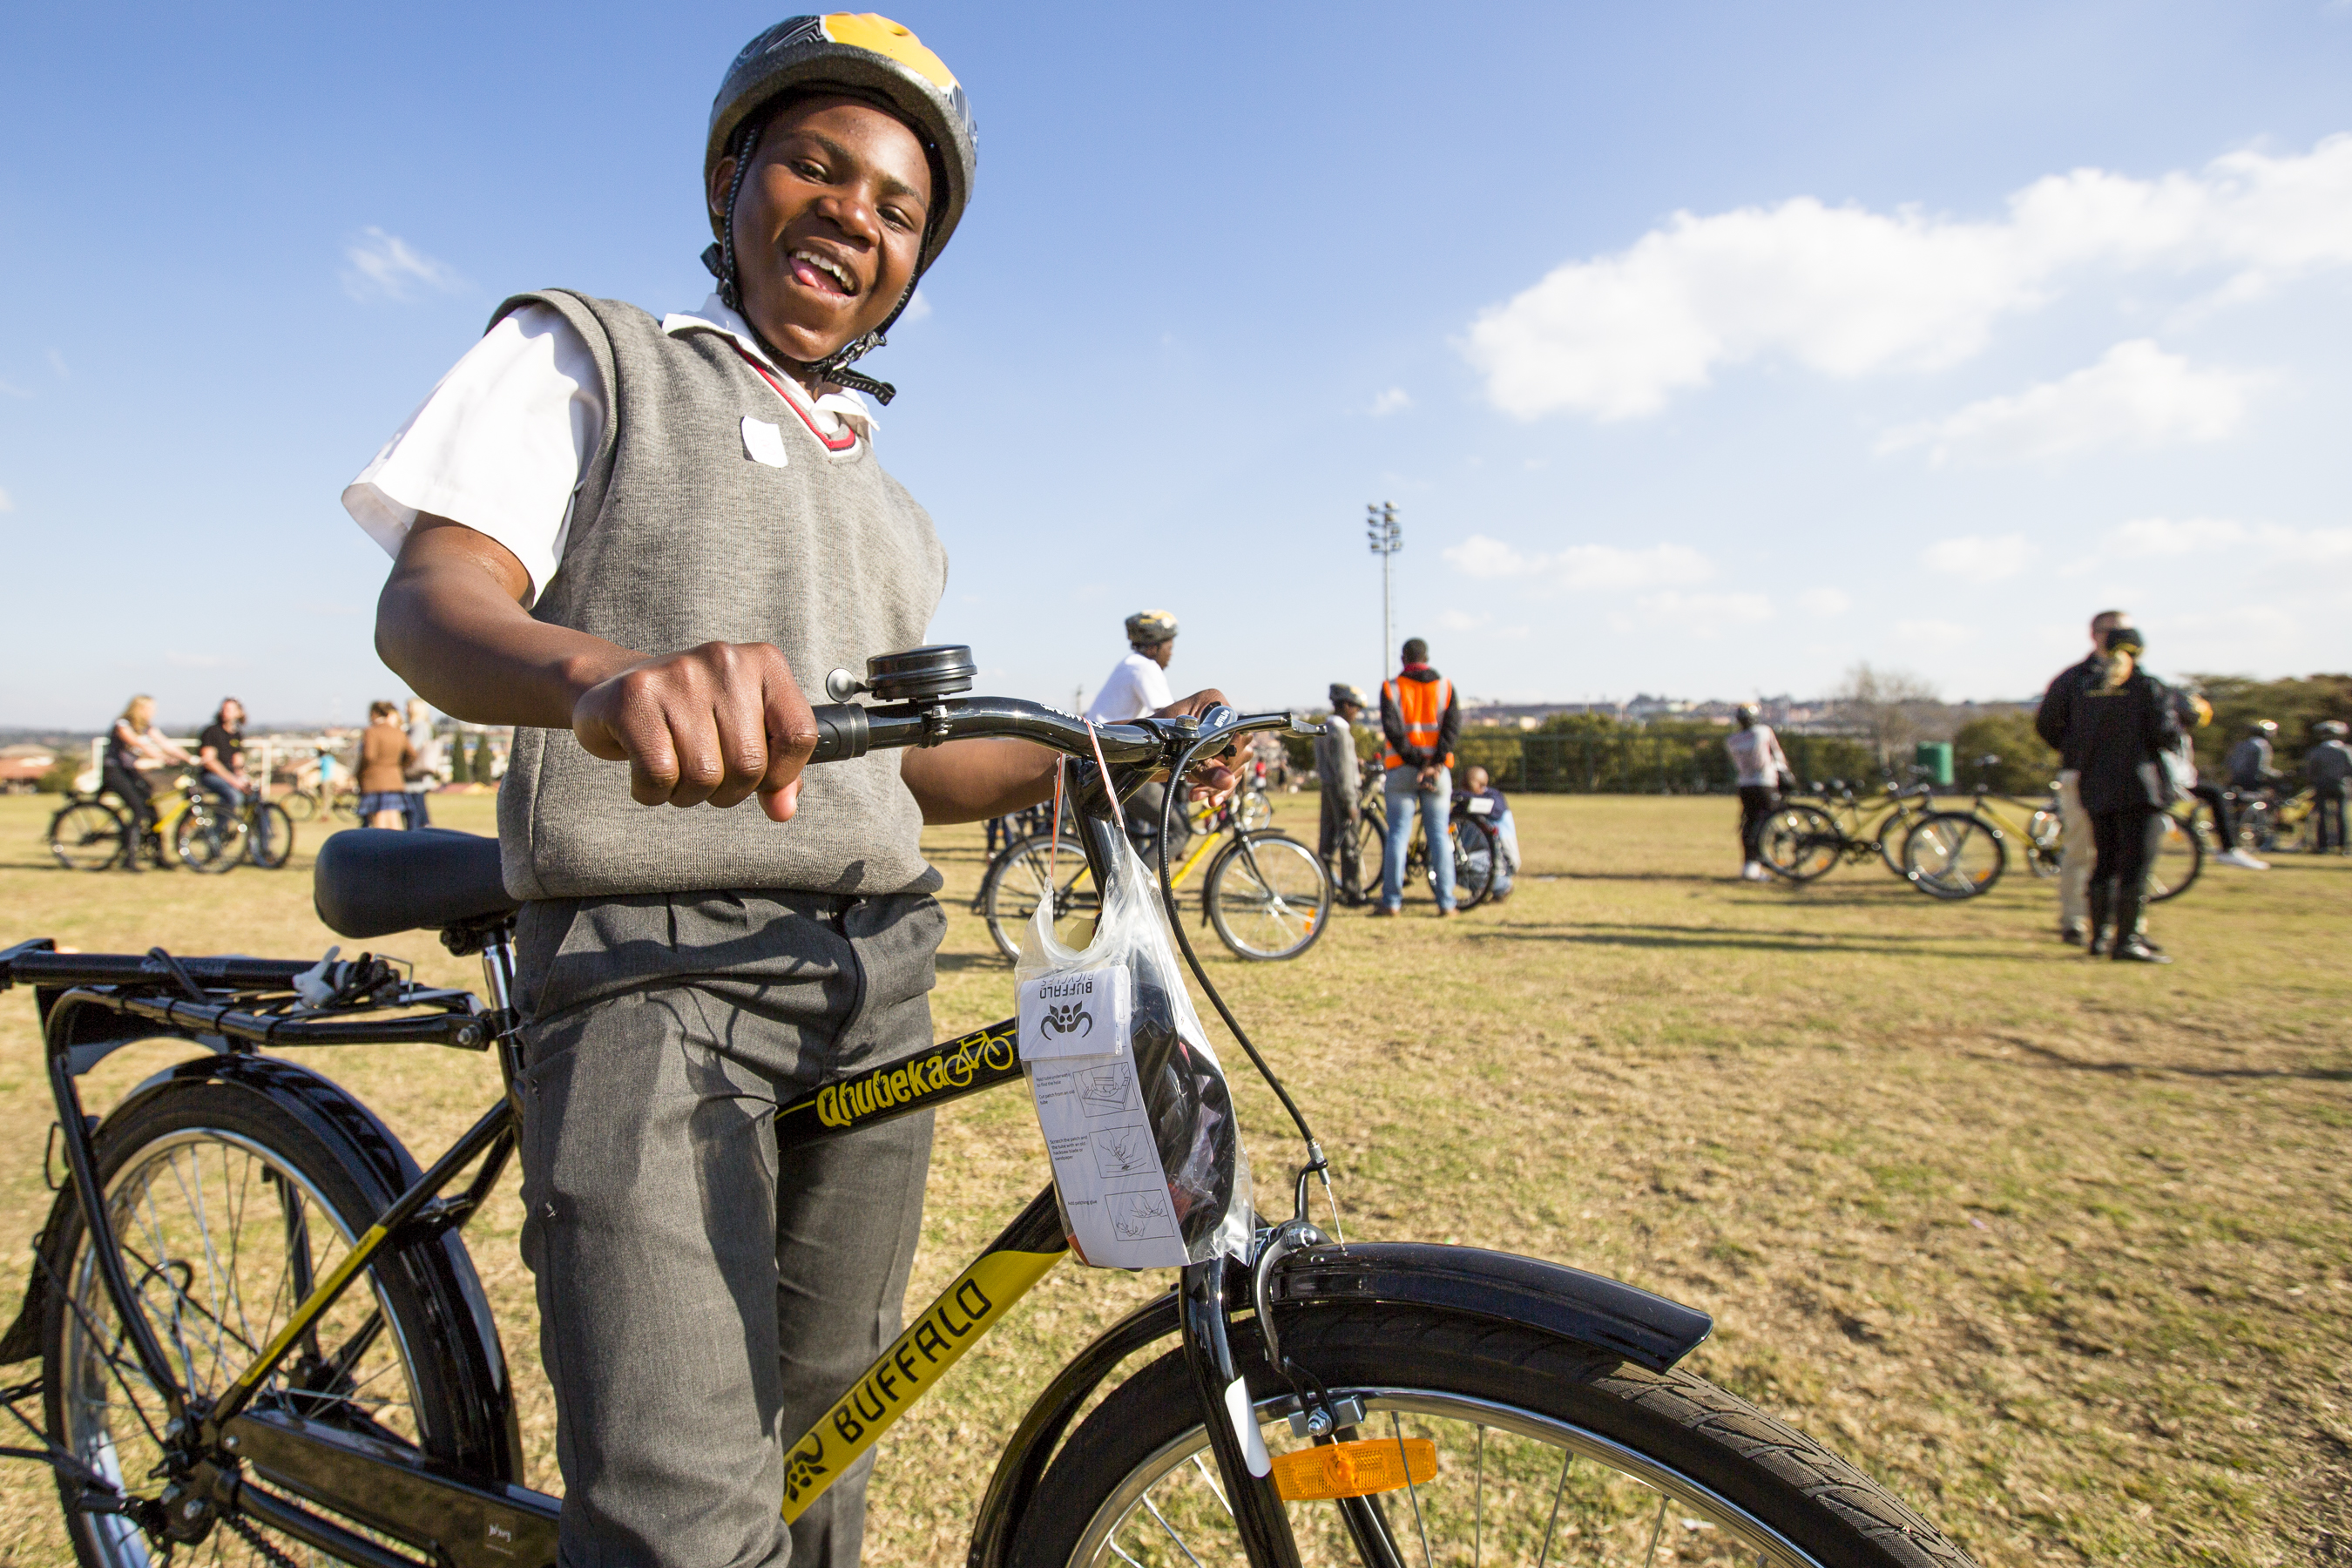 Qhubeka Alexandra Bike Handover June 22 2016 - photography by Liam Philley-7